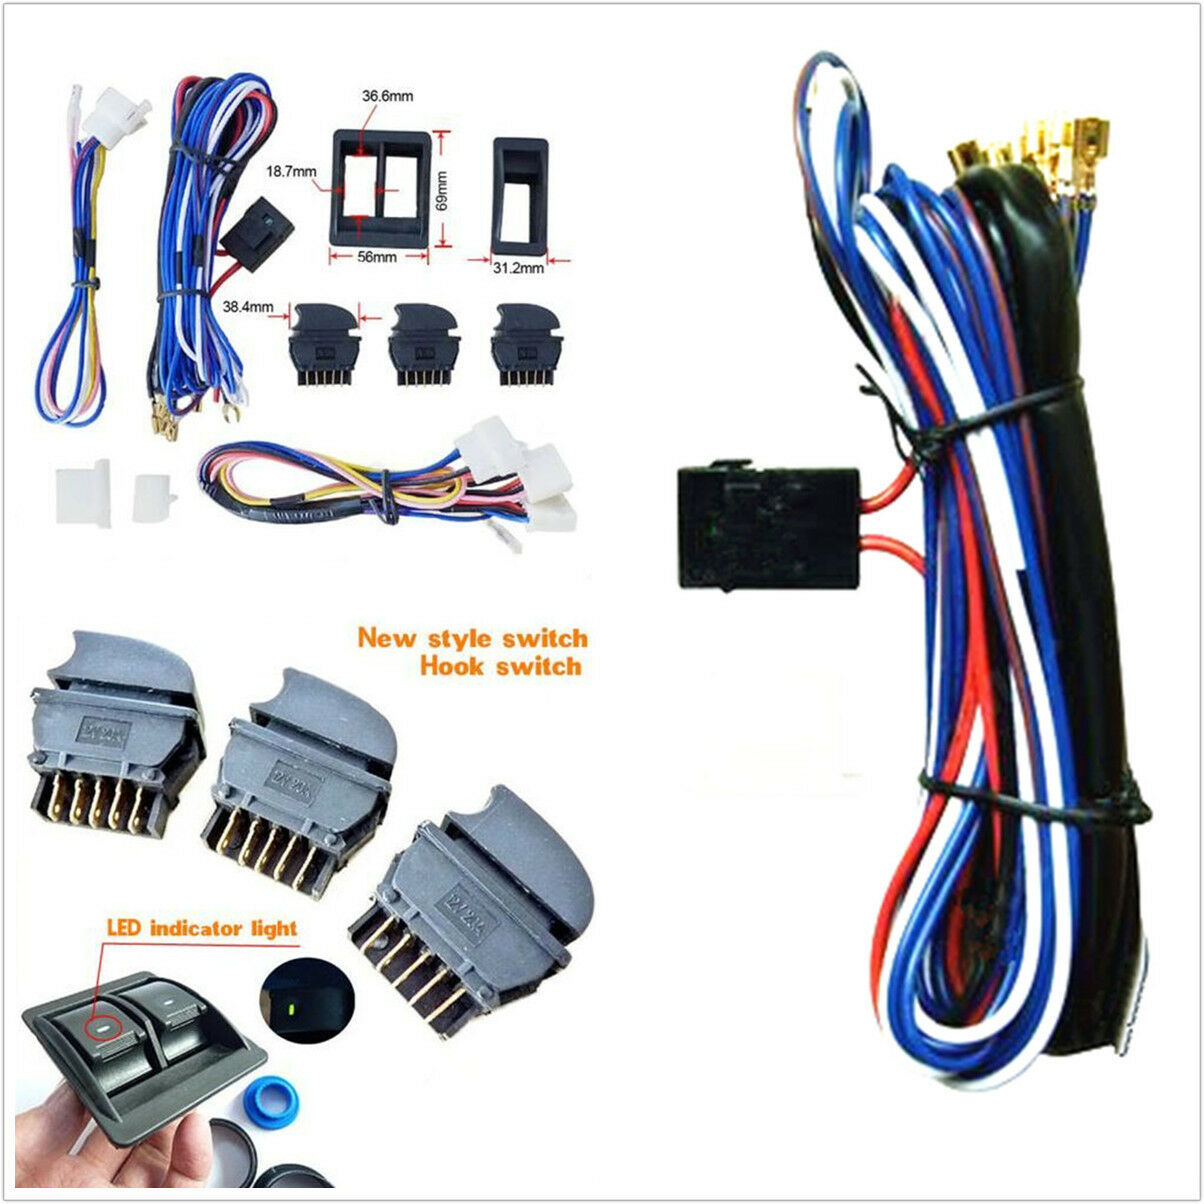 s l1600 diy dc 12v car power electric window switch with wire harness Shoulder Harness at crackthecode.co